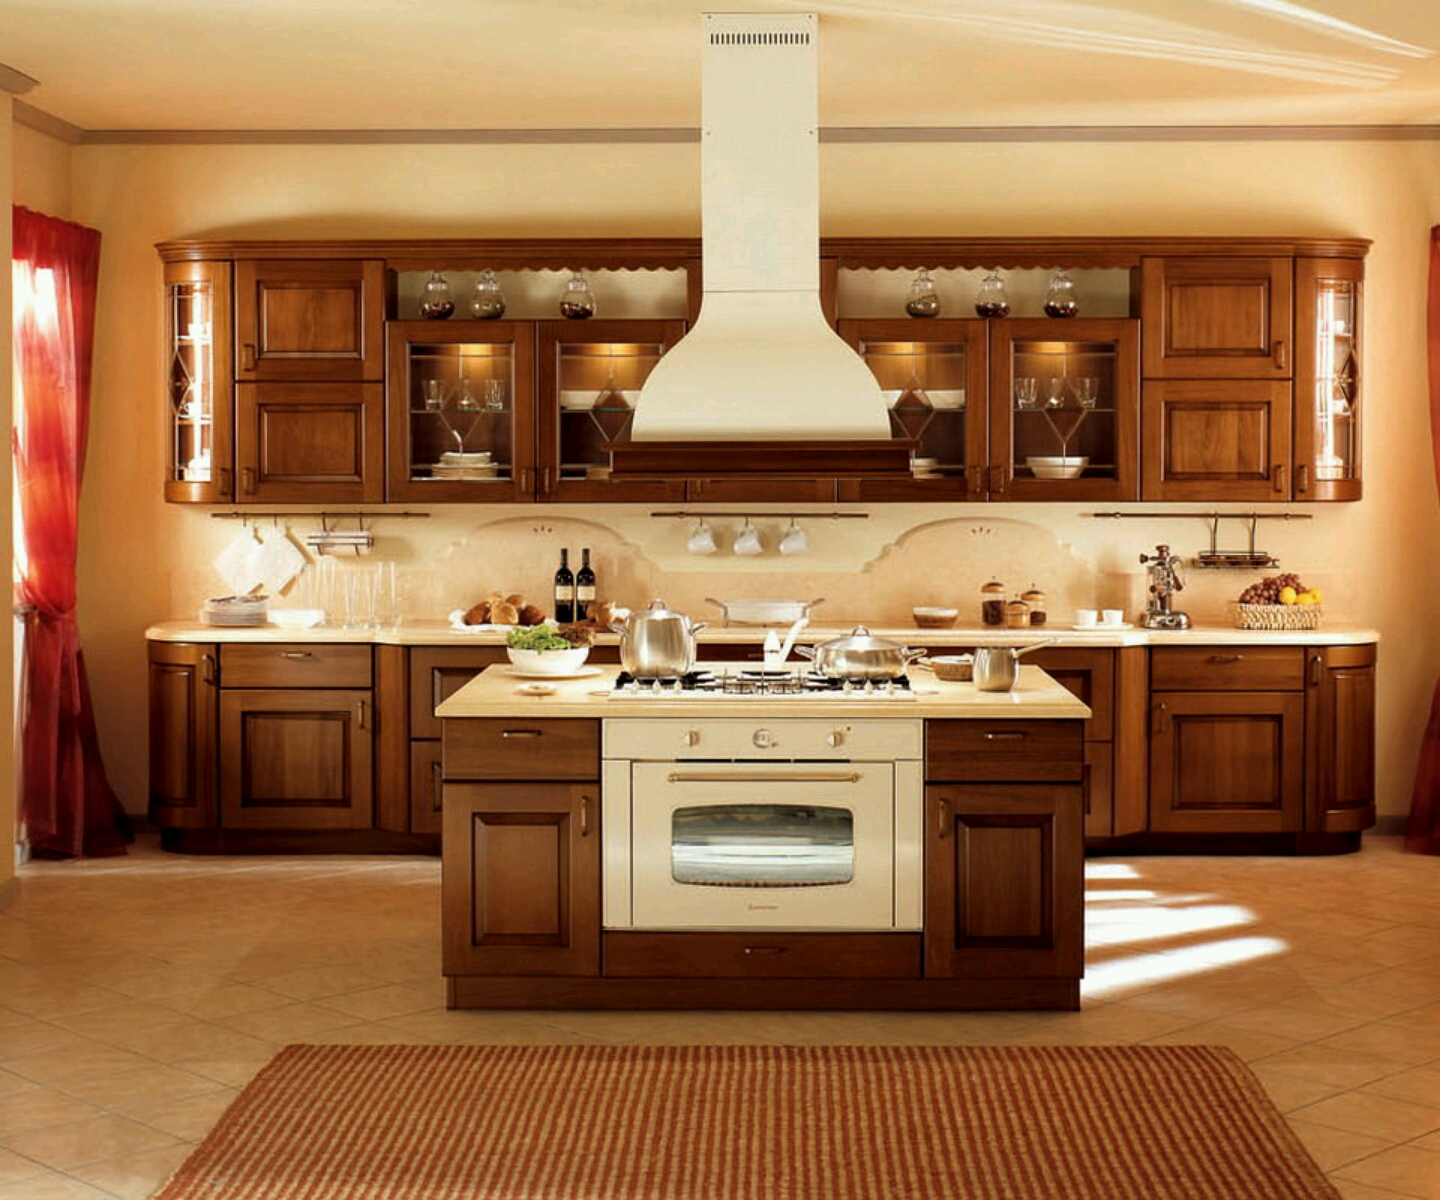 Latest Design For Kitchen: New Home Designs Latest.: Modern Kitchen Cabinets Designs